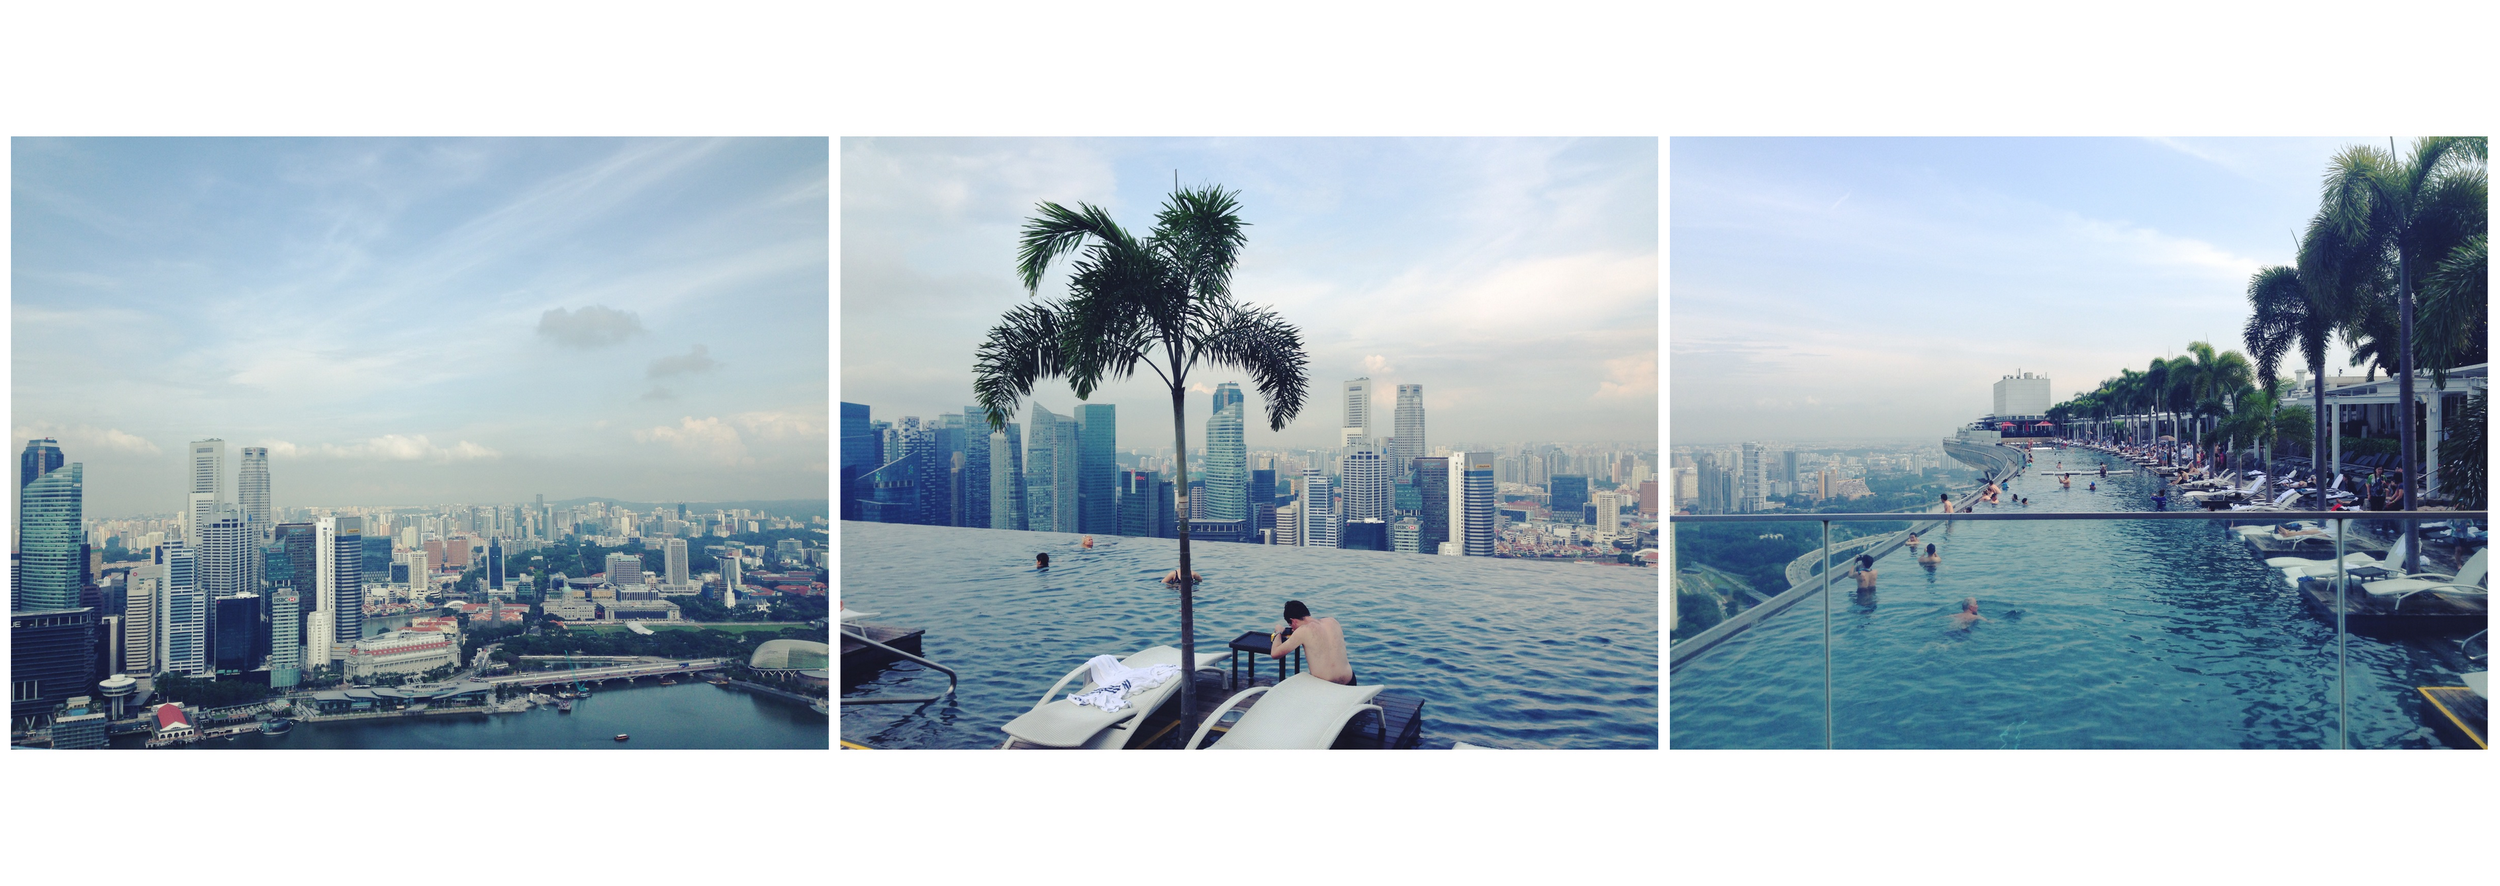 Marina-Bay-Sands-hotel-singapour-voyage.png